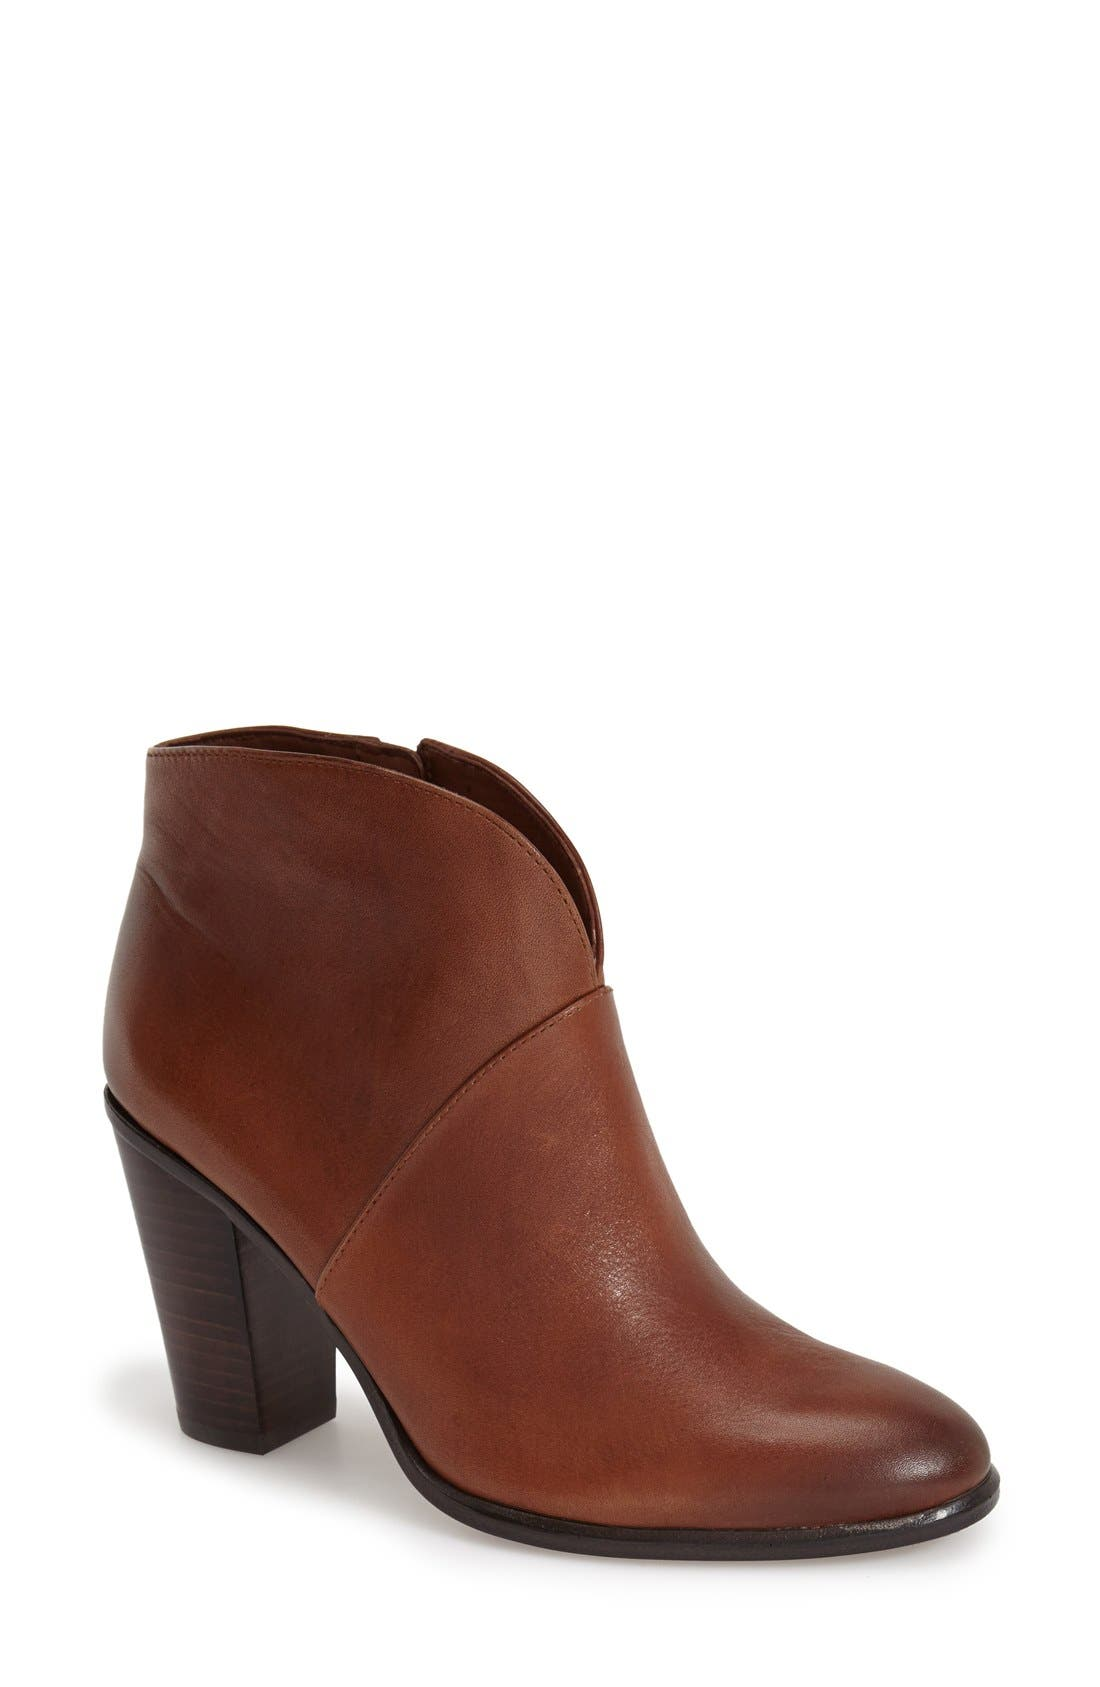 Main Image - Vince Camuto 'Franell' Western Bootie (Women)